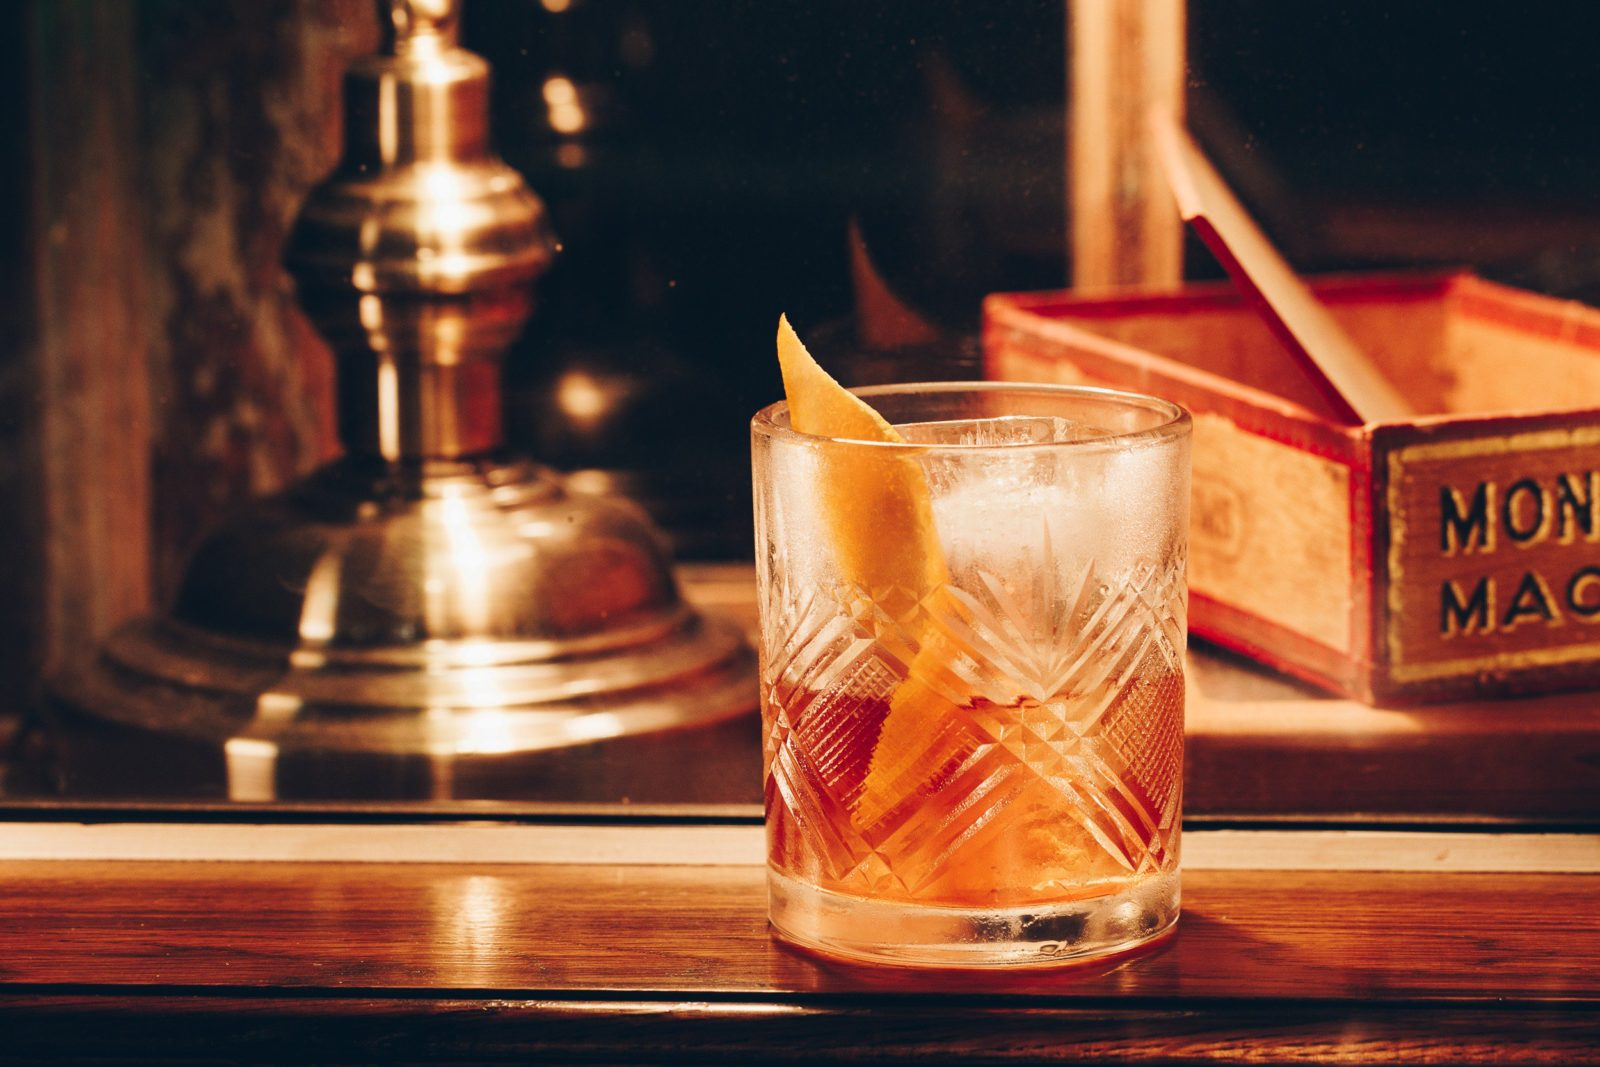 Rum and Rye Old Fashioned - Kittyhawk's signature cocktail